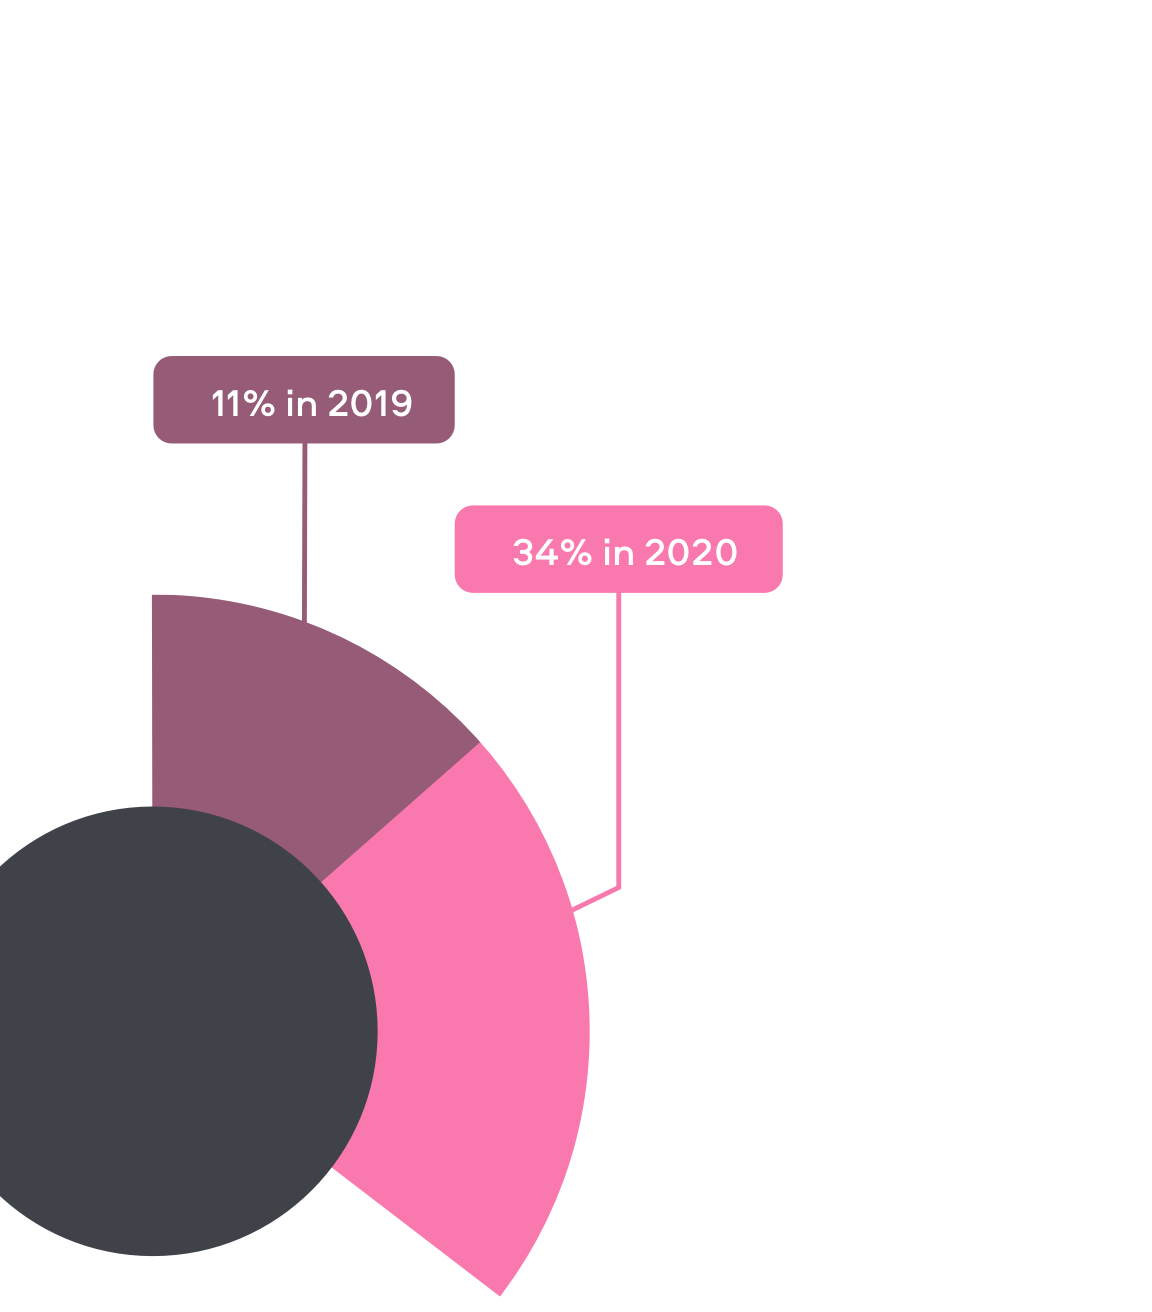 Visual Pie Chart displaying the growth in UK Adults showing anxiety or depression symptions from 11% in 2019 to 34% in 2020